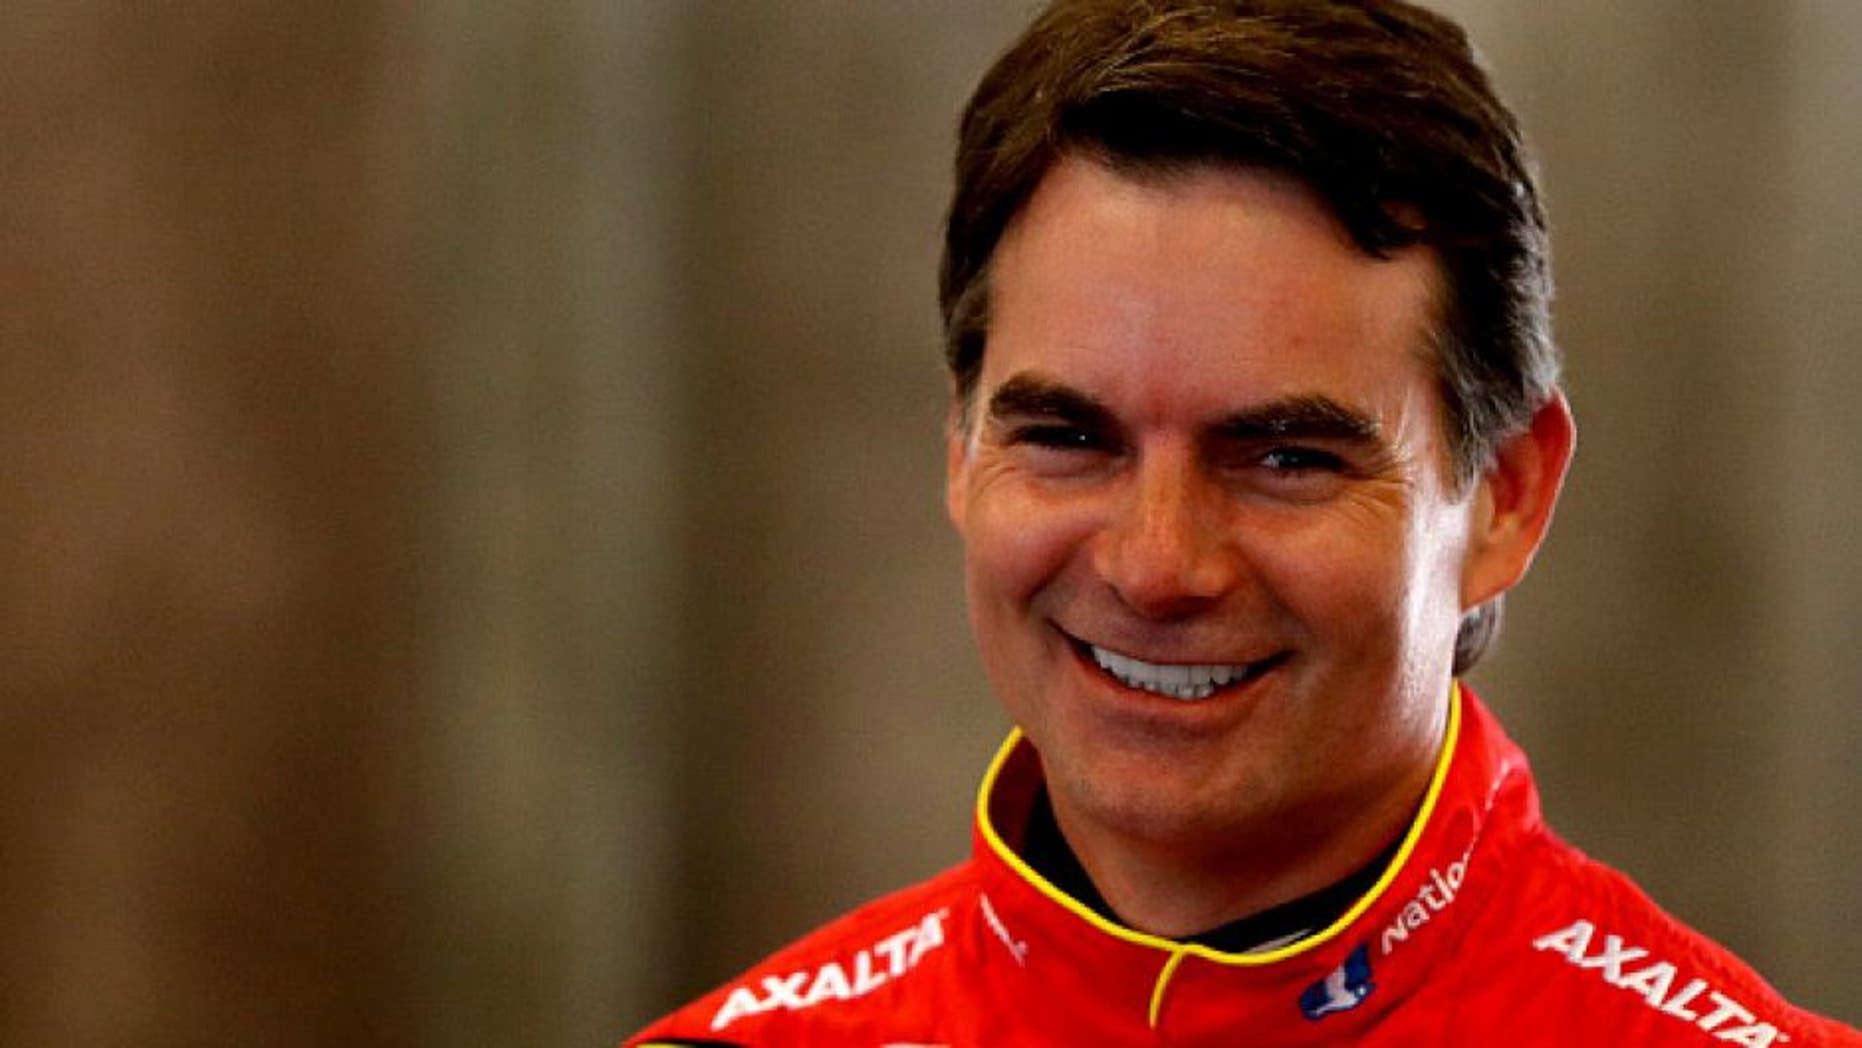 INDIANAPOLIS, IN - JULY 22: Jeff Gordon, driver of the #88 Axalta Chevrolet, stands in the garage area during practice for the NASCAR Sprint Cup Series Crown Royal presents the Combat Wounded Coalition 400 at the Brickyard at Indianapolis Motor Speedway on July 23, 2016 in Indianapolis, Indiana. (Photo by Sean Gardner/NASCAR via Getty Images)